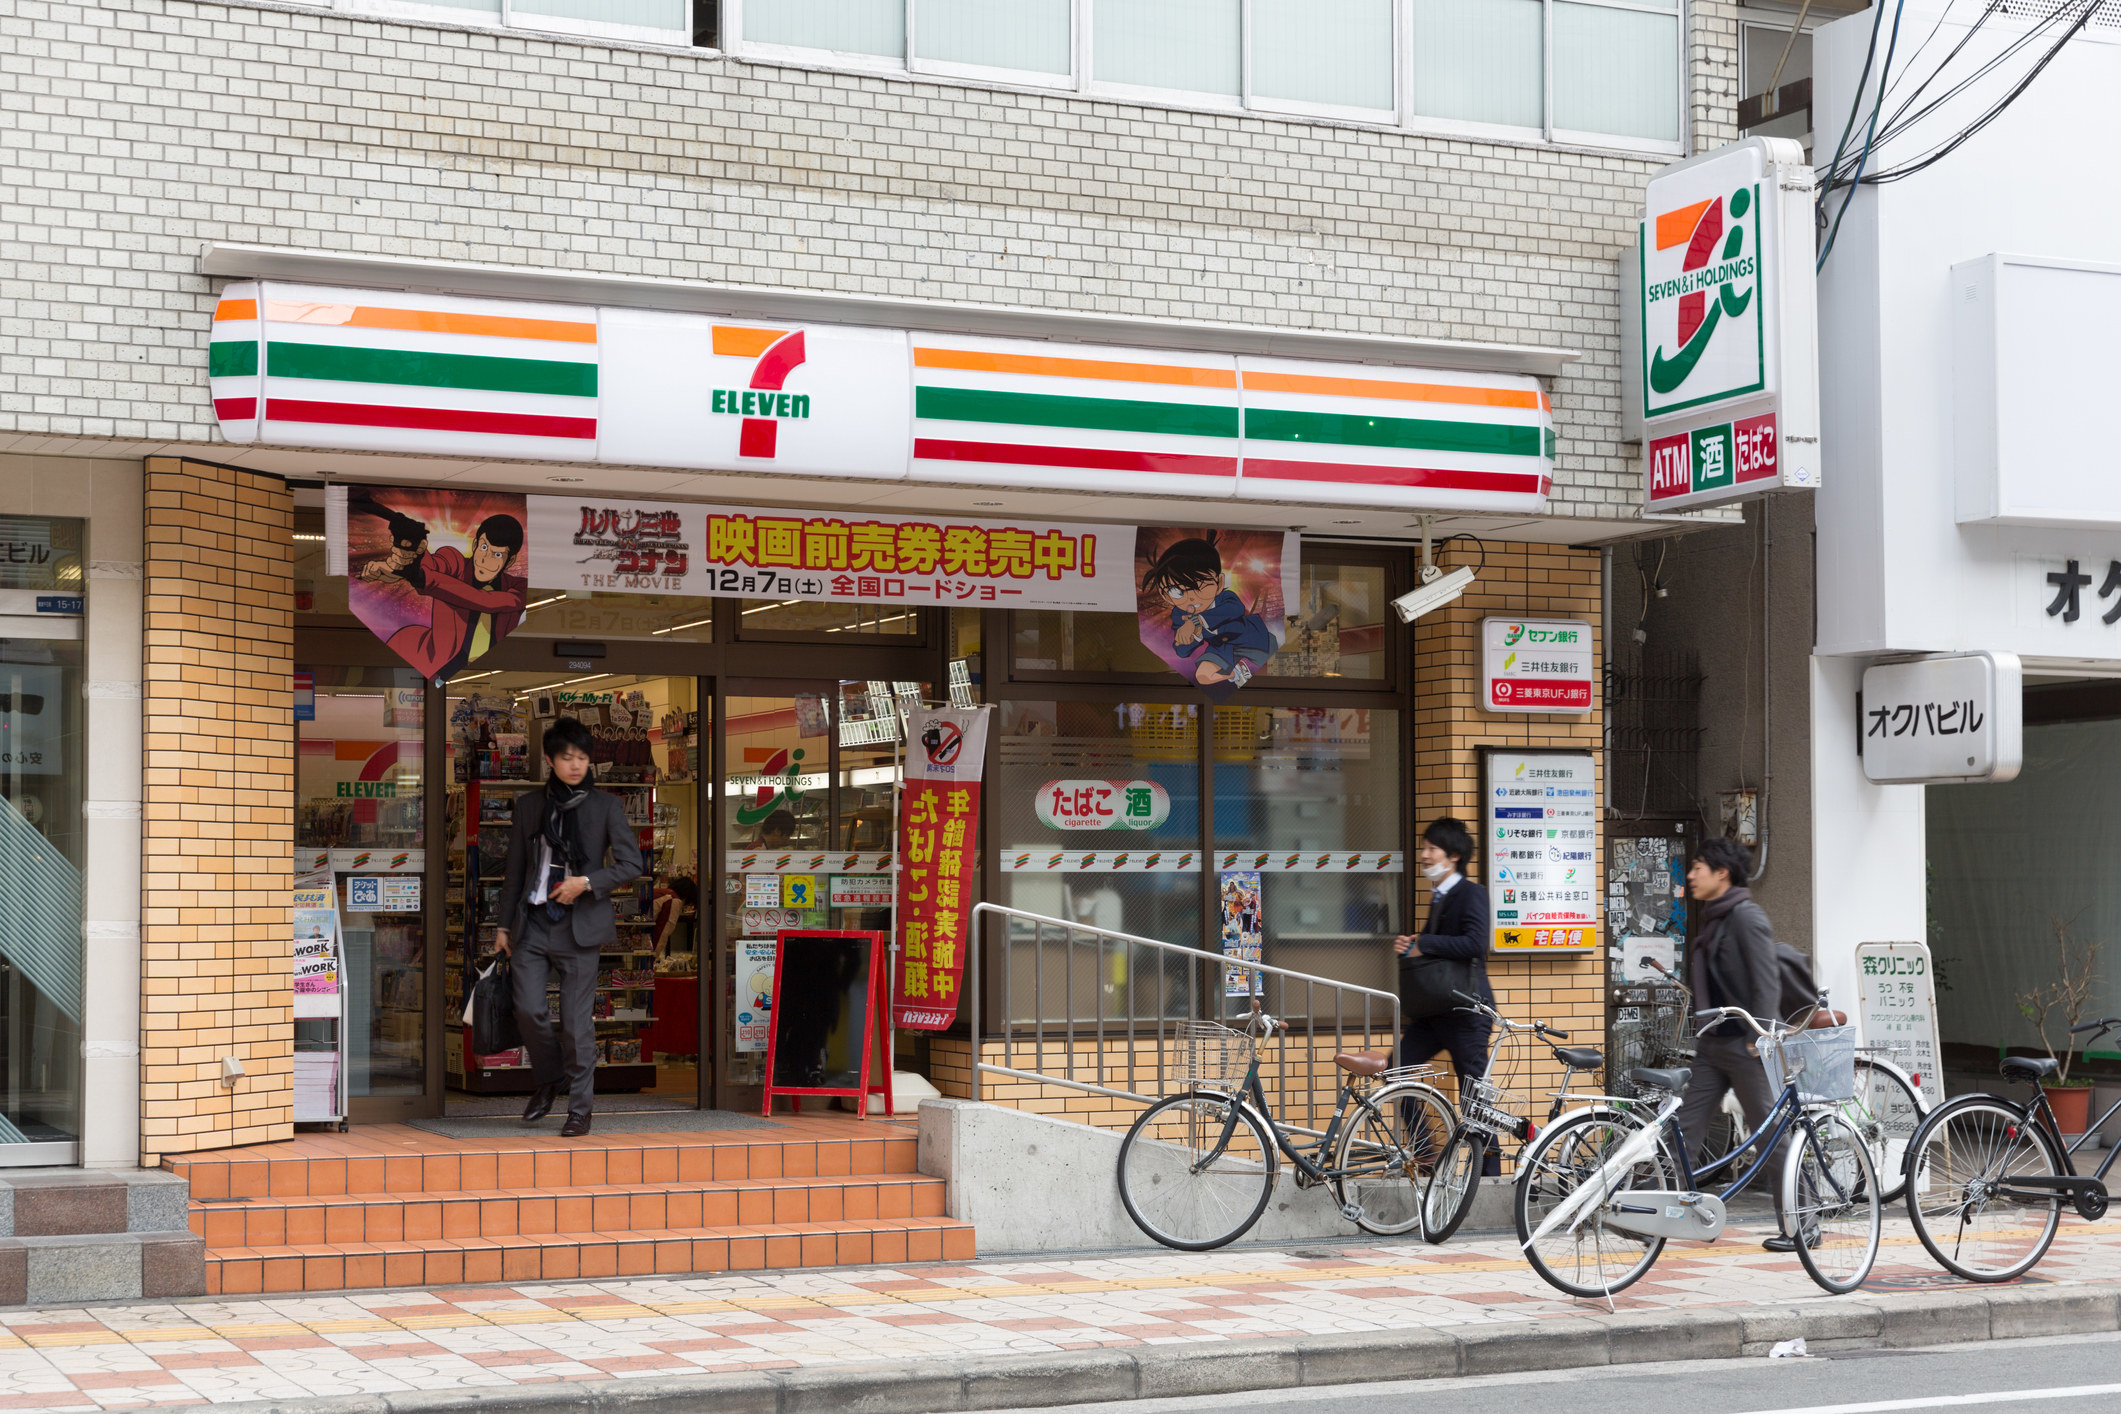 A Japanese 7-Eleven convenience store.